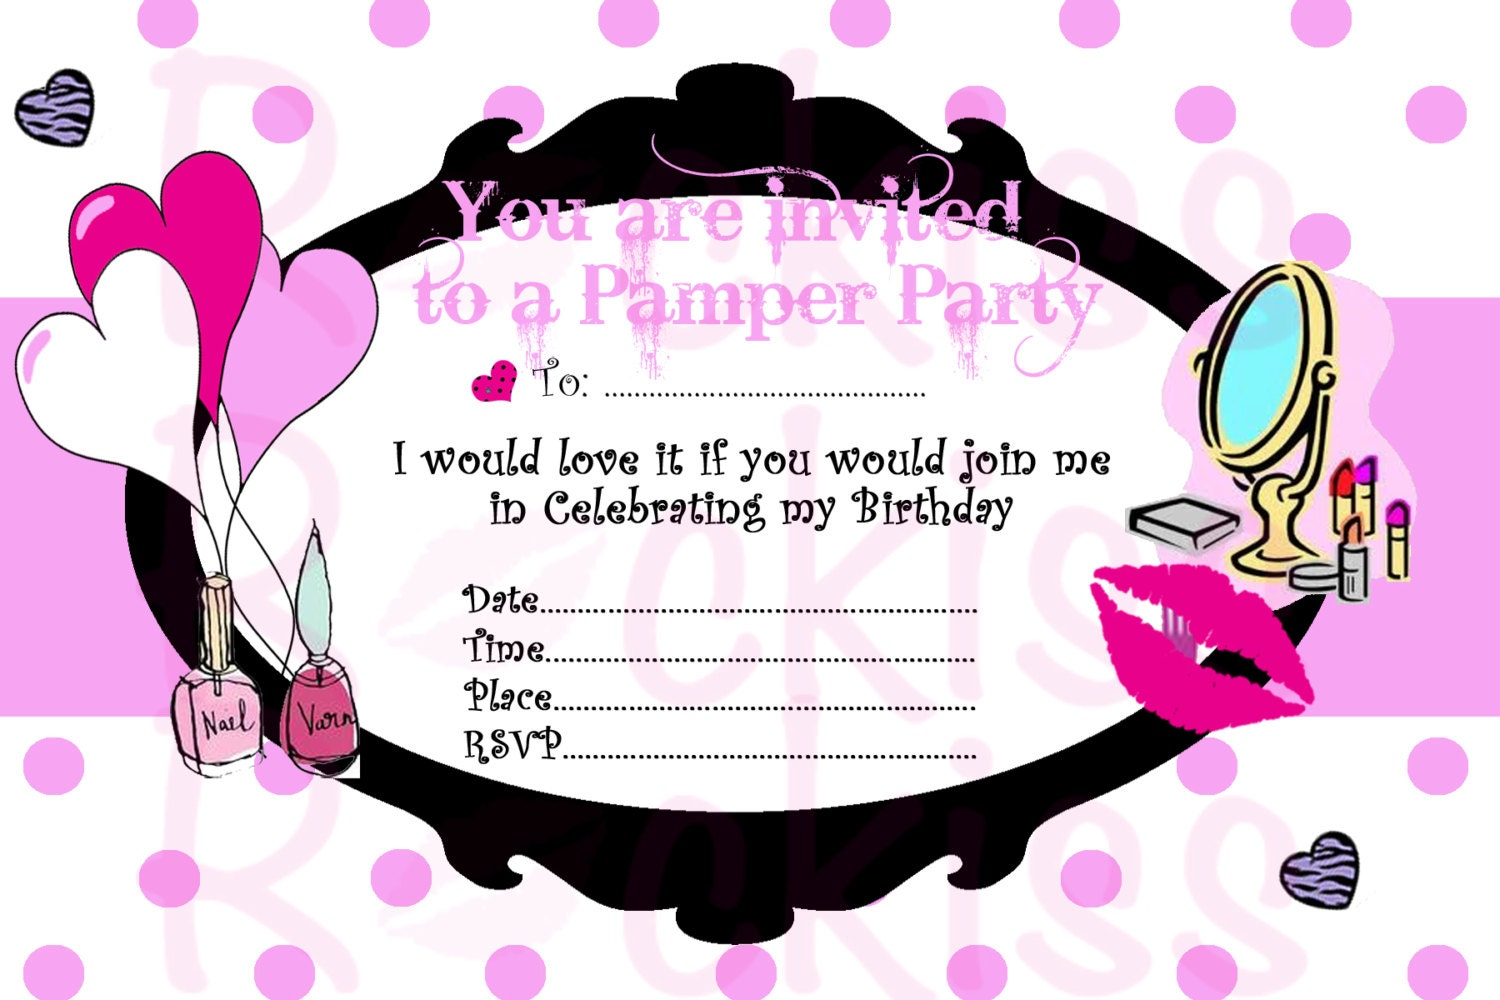 pamper party invitations free printables Images - Frompo